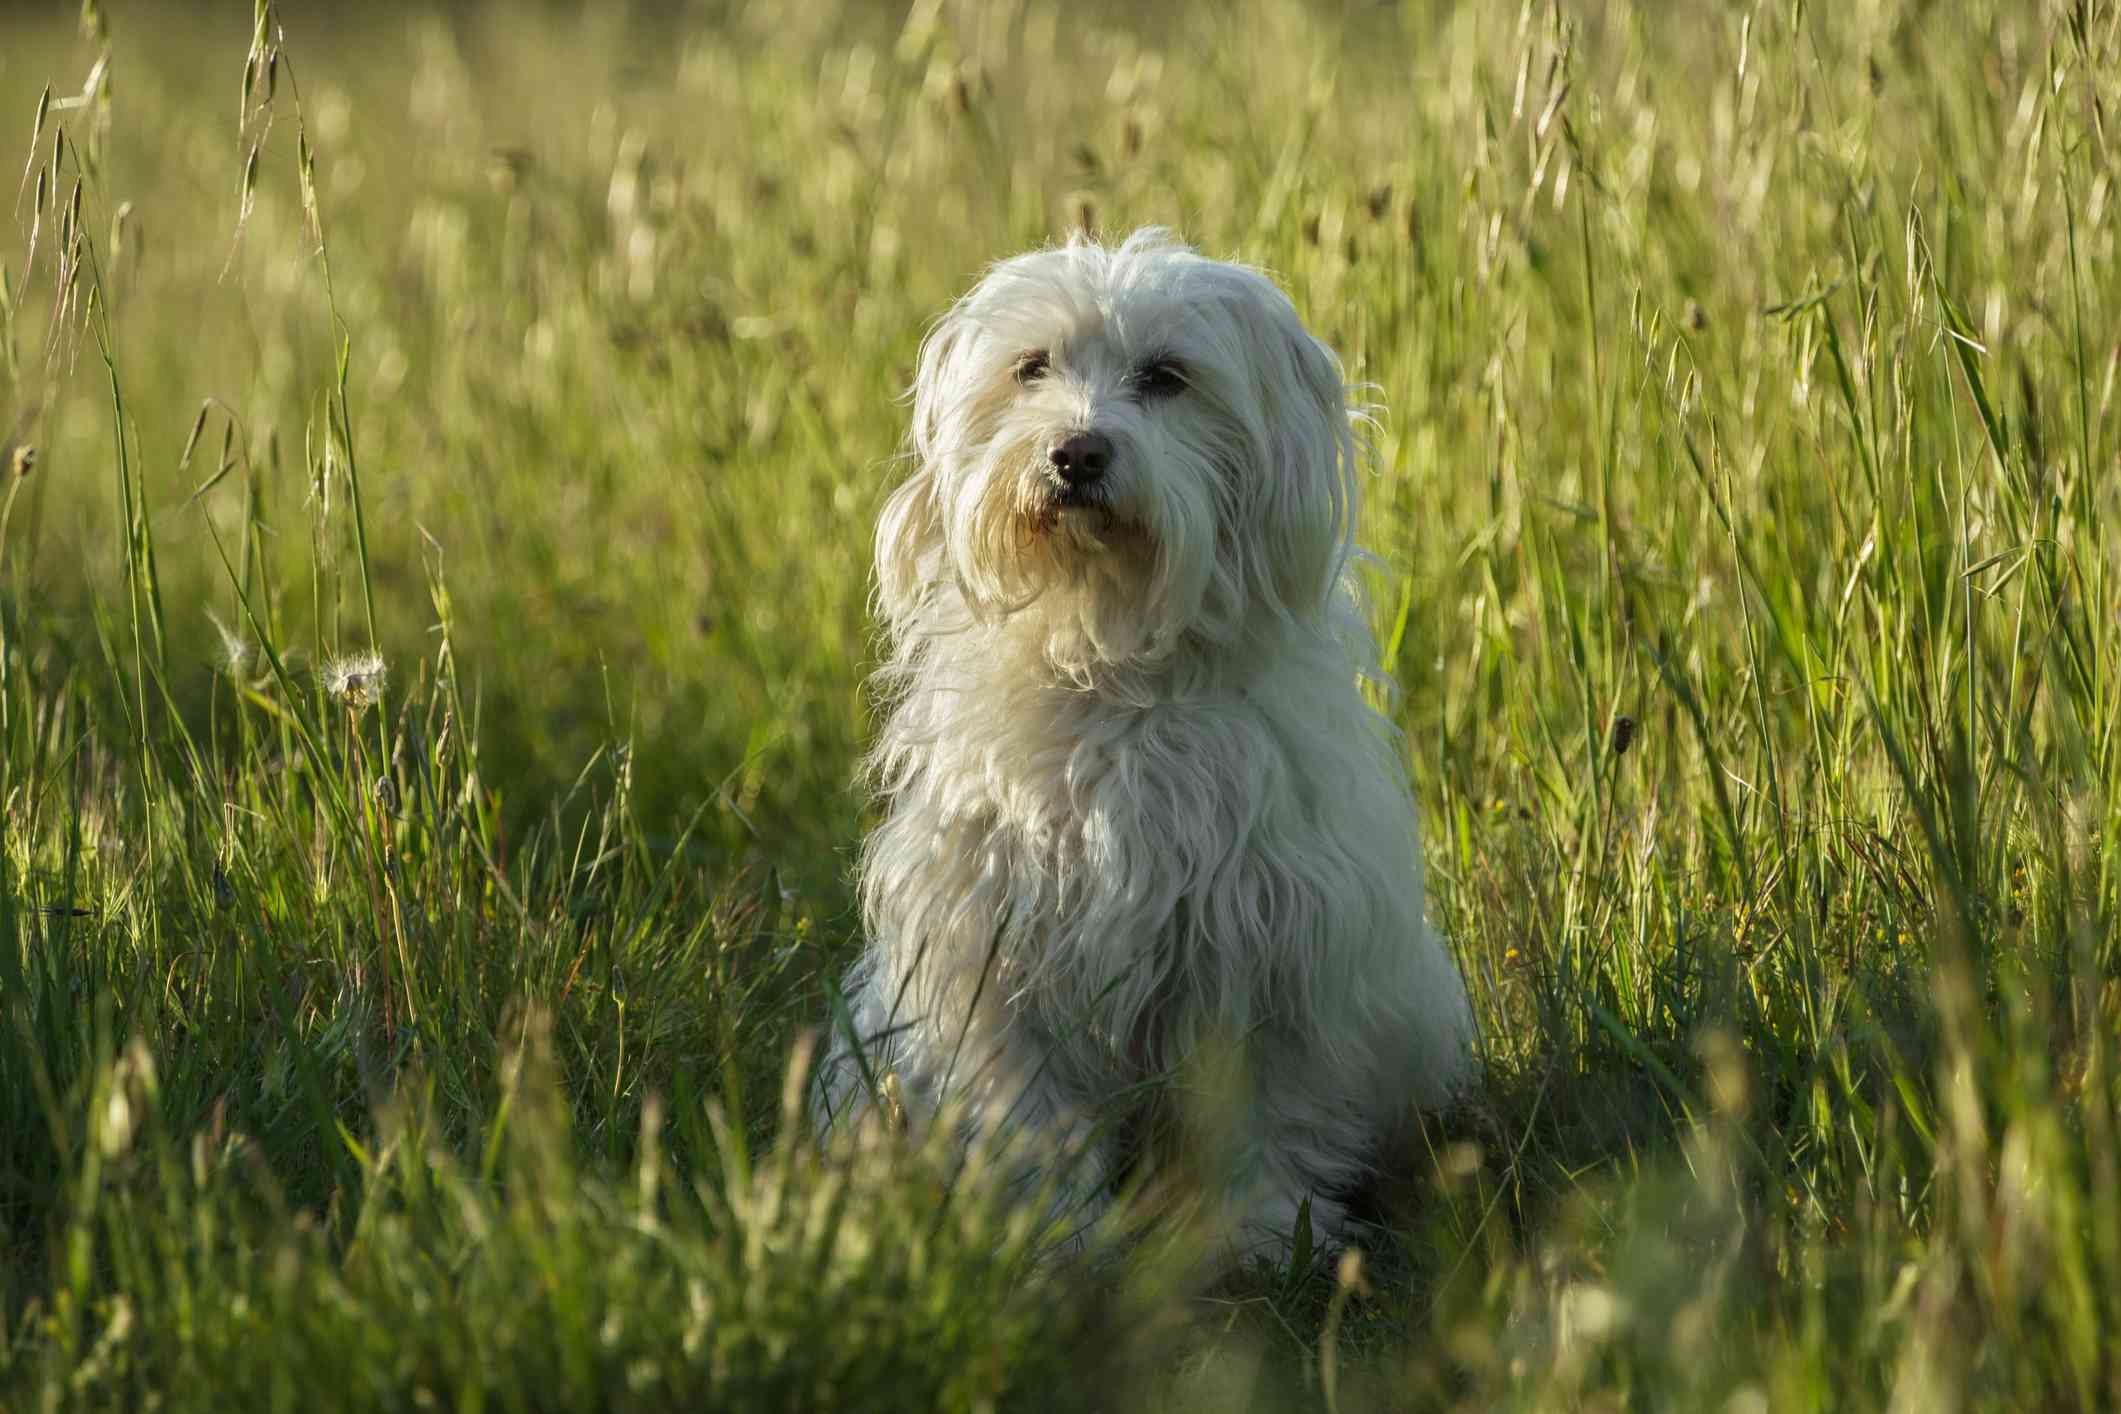 A long-haired white dog sitting nicely in long grass.